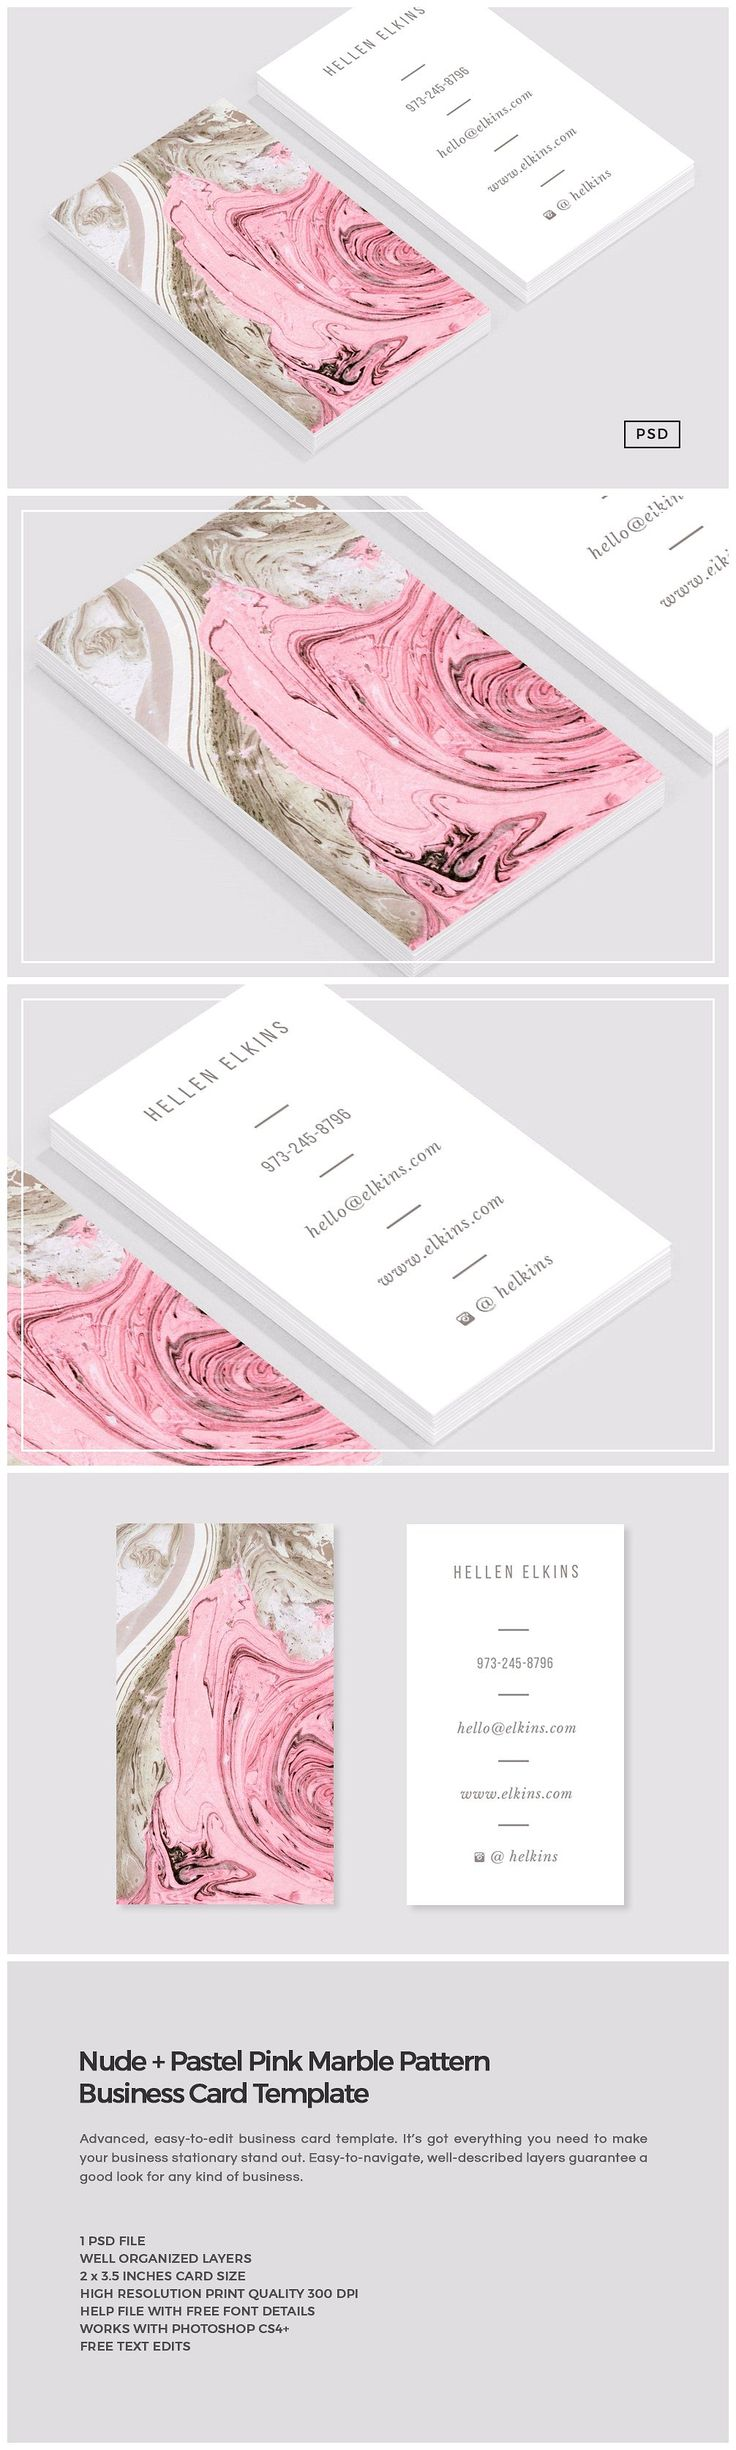 12 best business cards inspo images on pinterest business cards nude pink marble business card reheart Choice Image